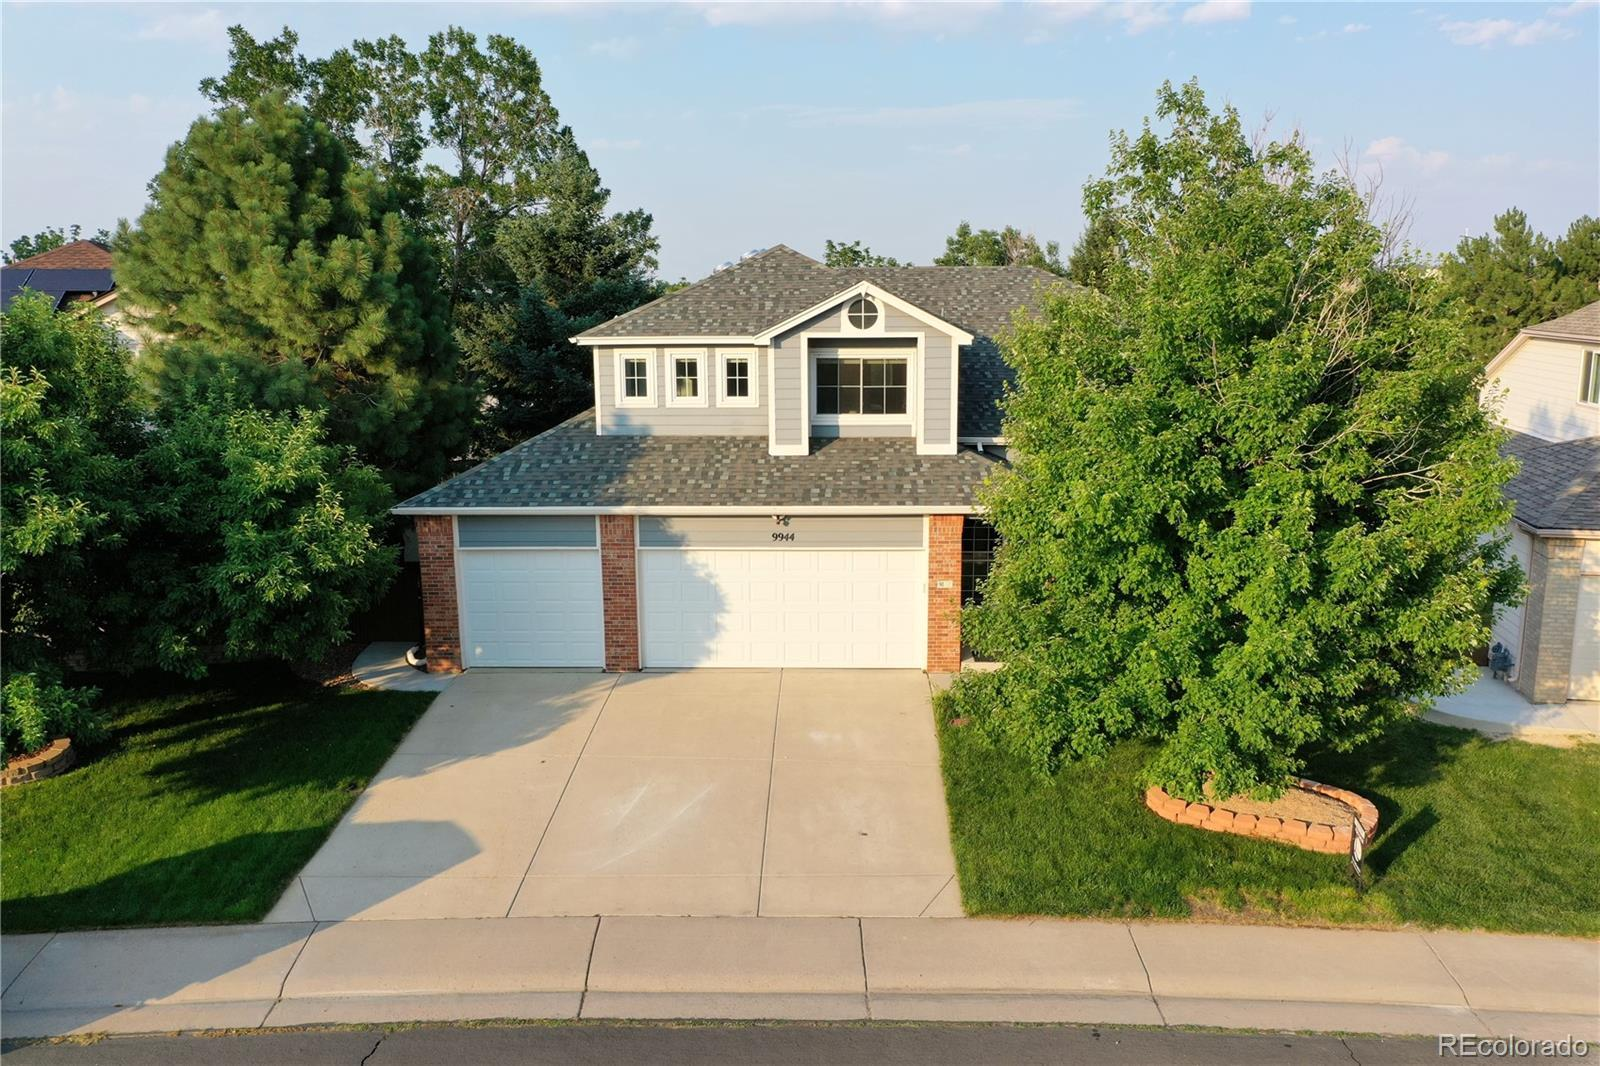 9944 Silver Maple Way, Highlands Ranch, CO 80129 - #: 5641665